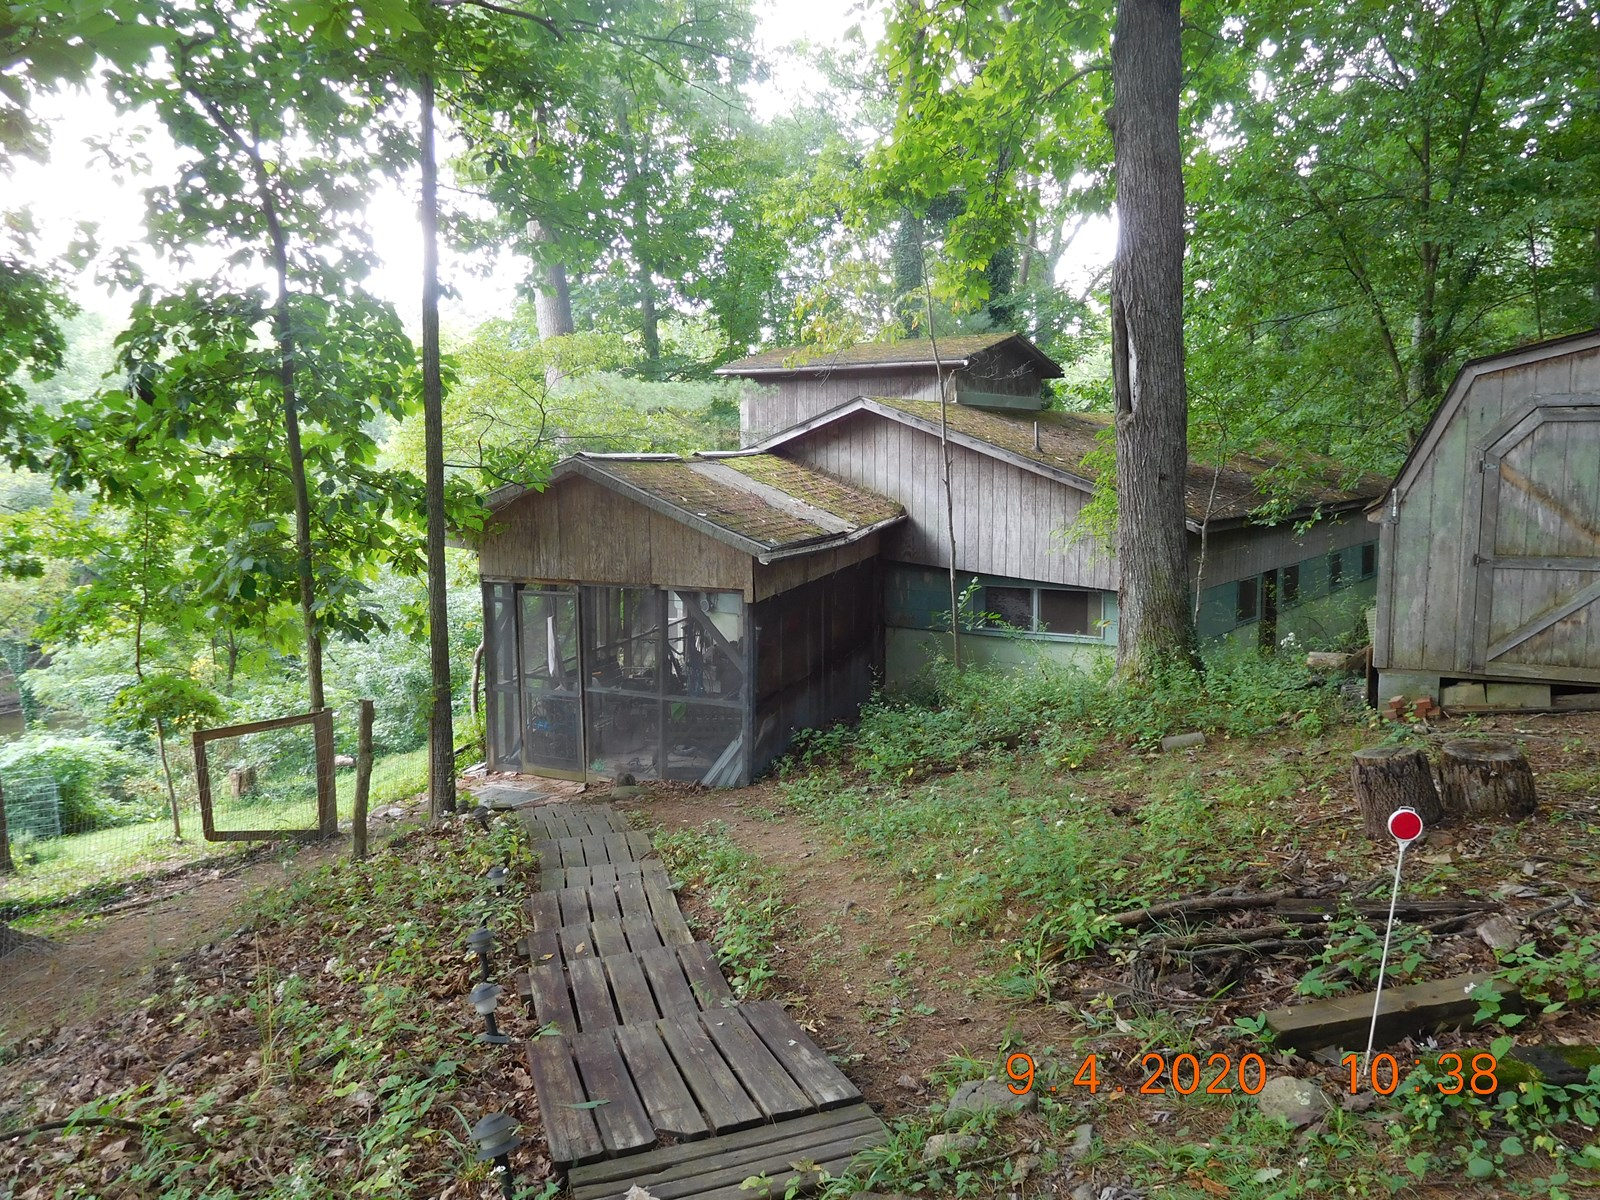 Big Old Rambling Shack in the Woods